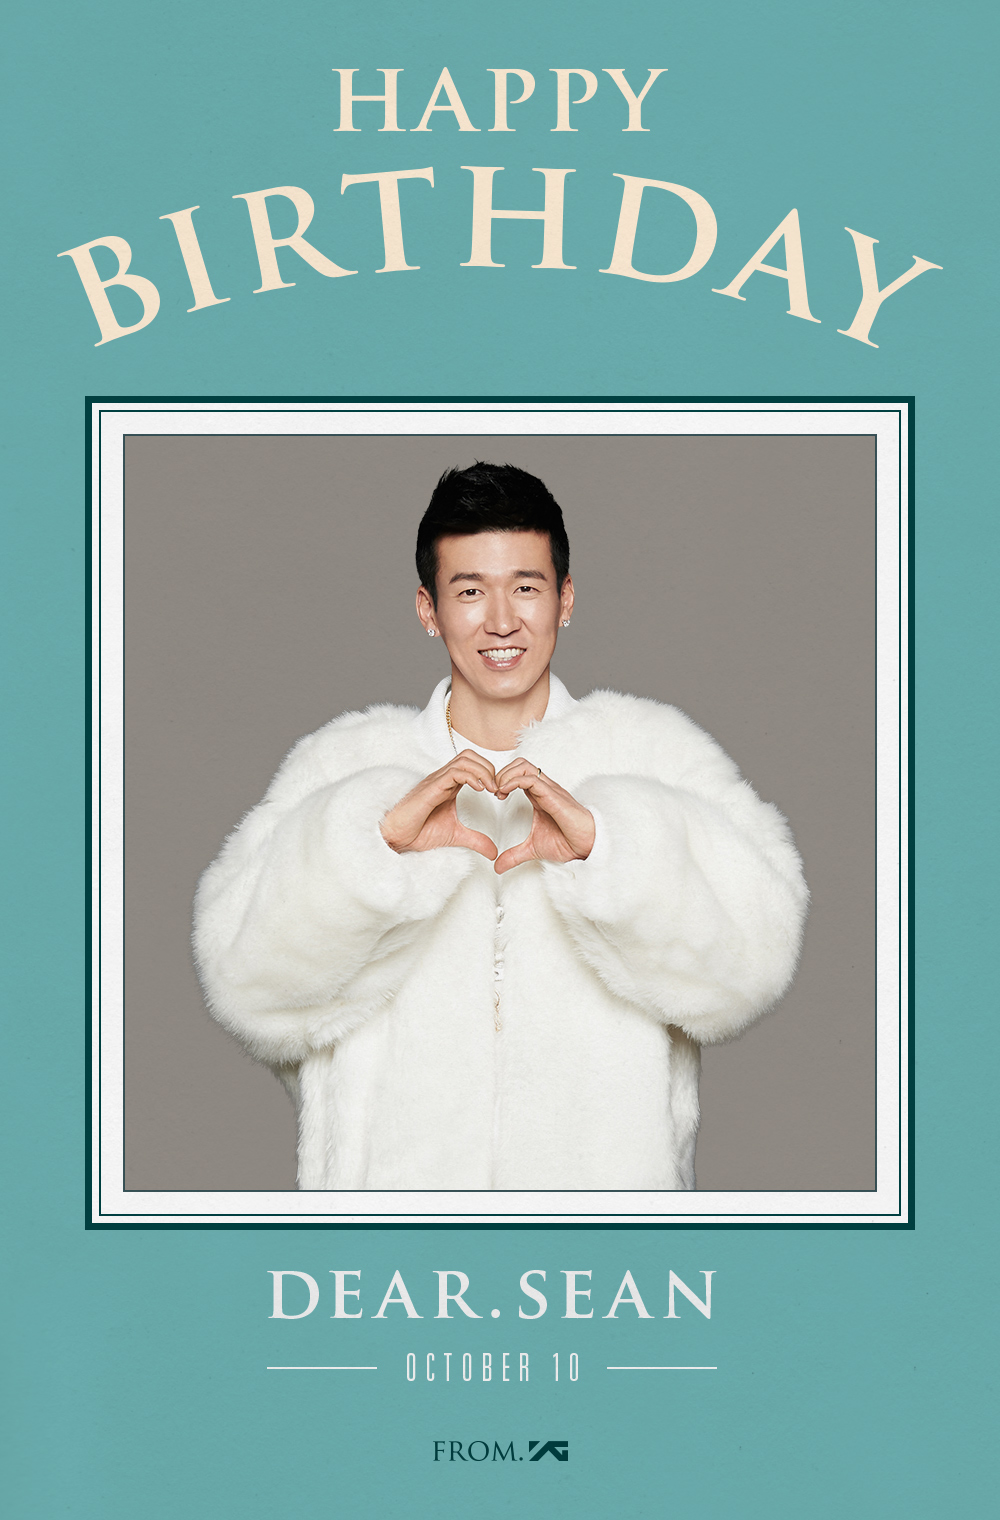 SEAN BIRTHDAY POSTER